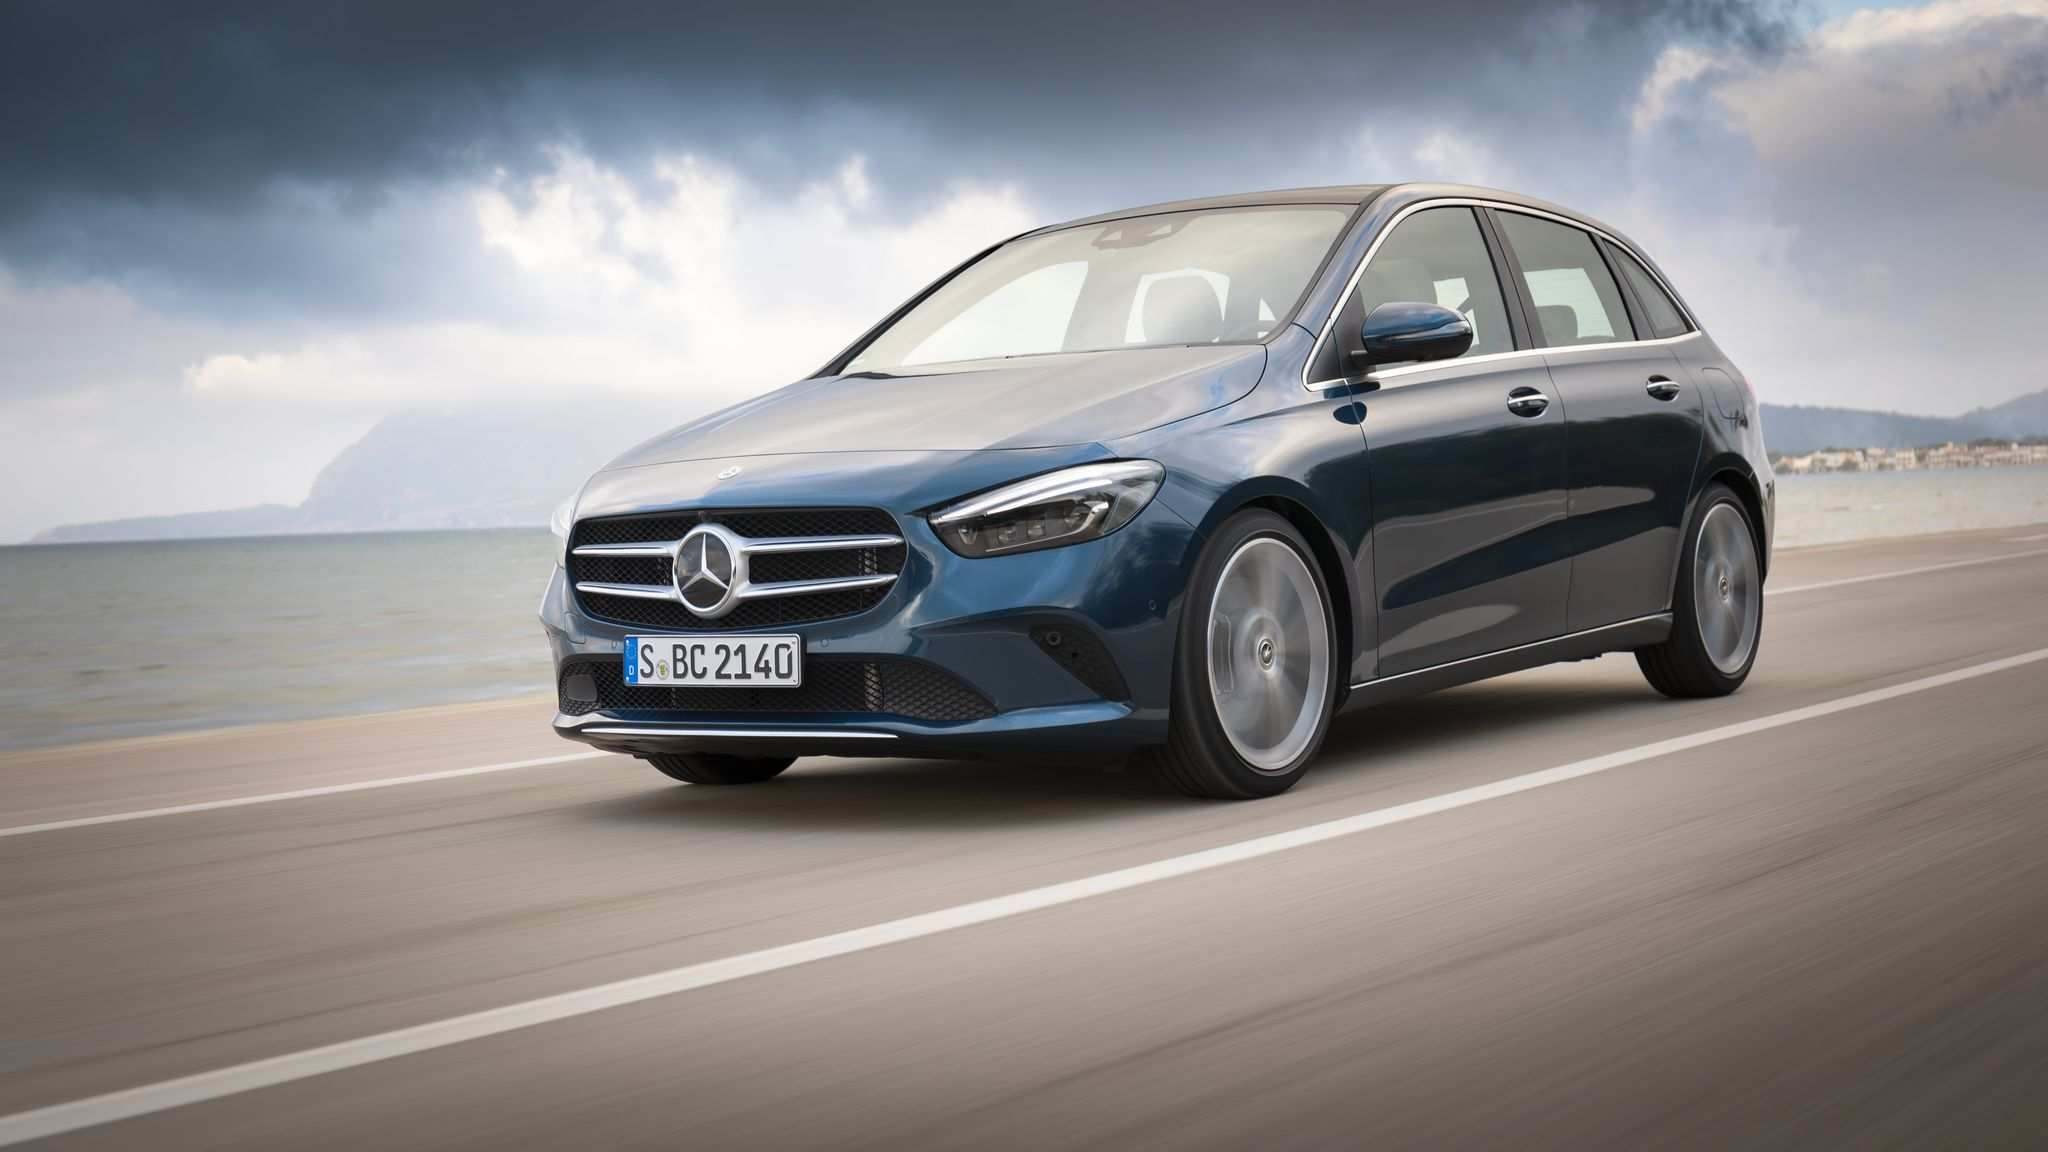 63 The Best Pictures Of 2019 Mercedes Benz Price